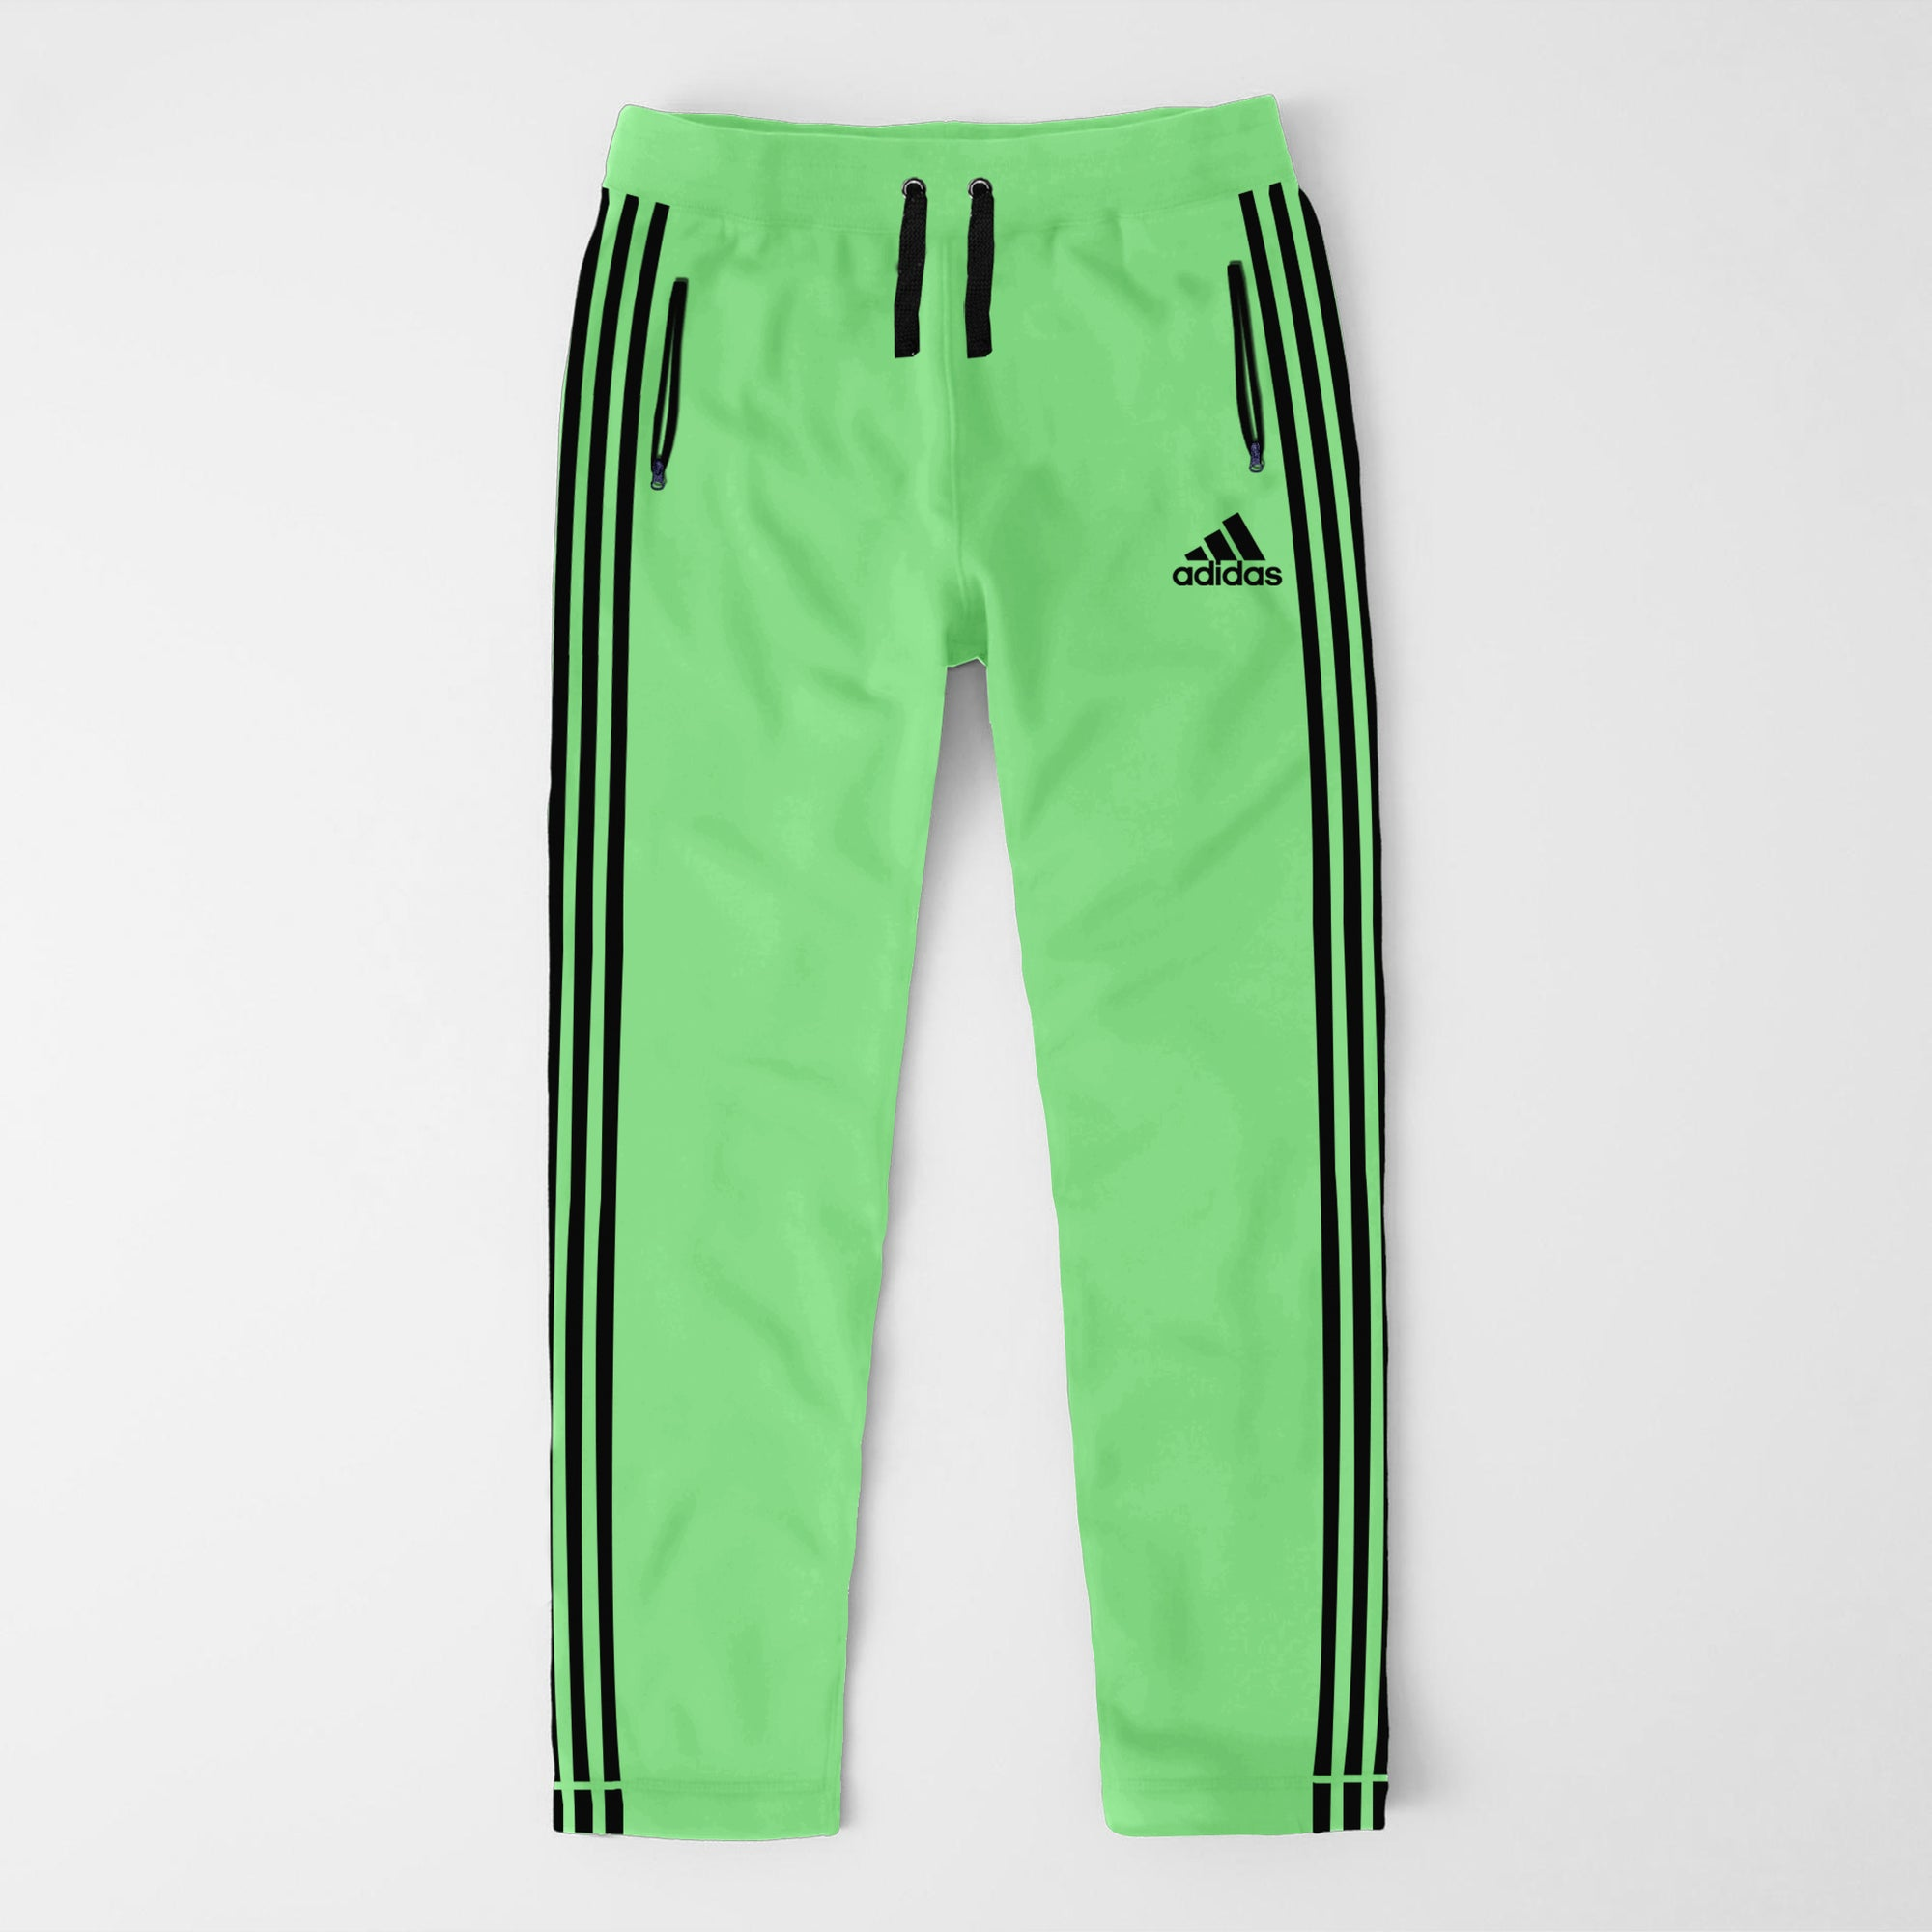 Adidas Single Jersey Regular Fit Trouser For Men-LIght Green With Black Stripes-SP381